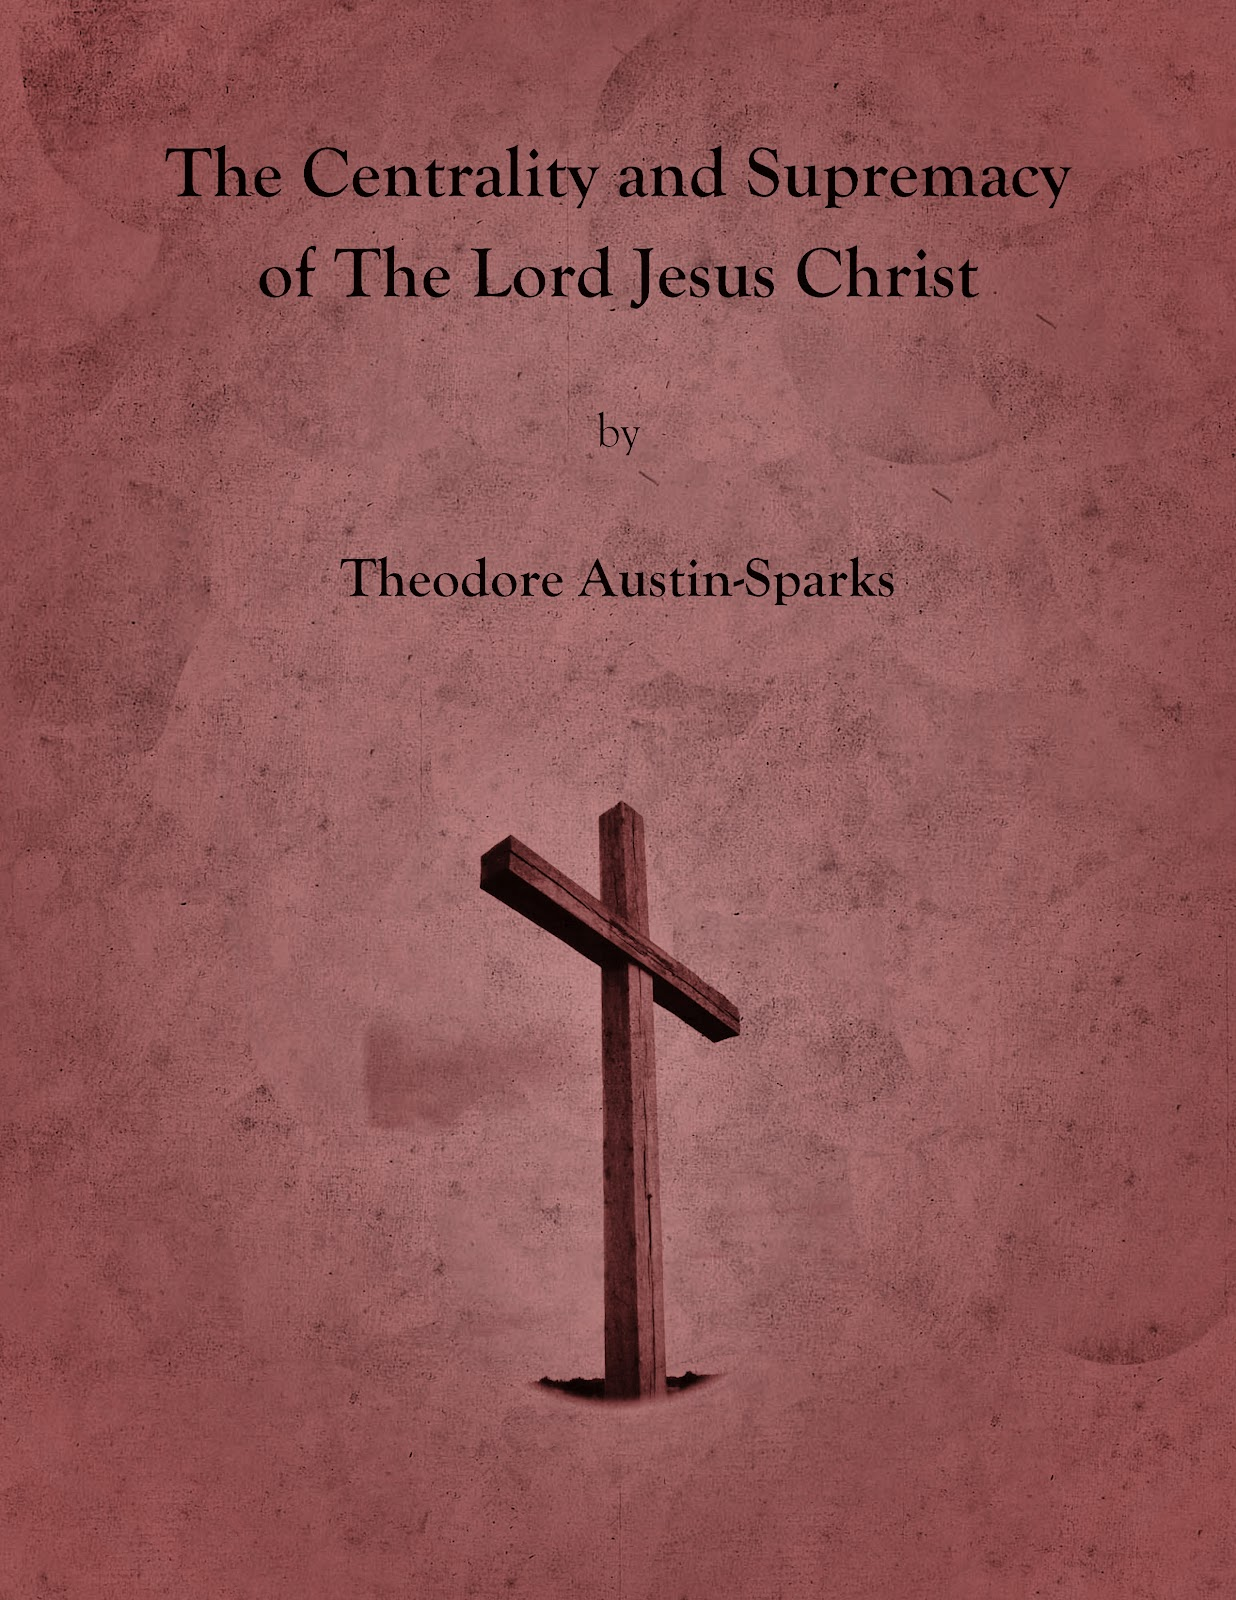 The Centrality and Supremacy of Jesus Christ | The Website & Blog of David D. Flowers